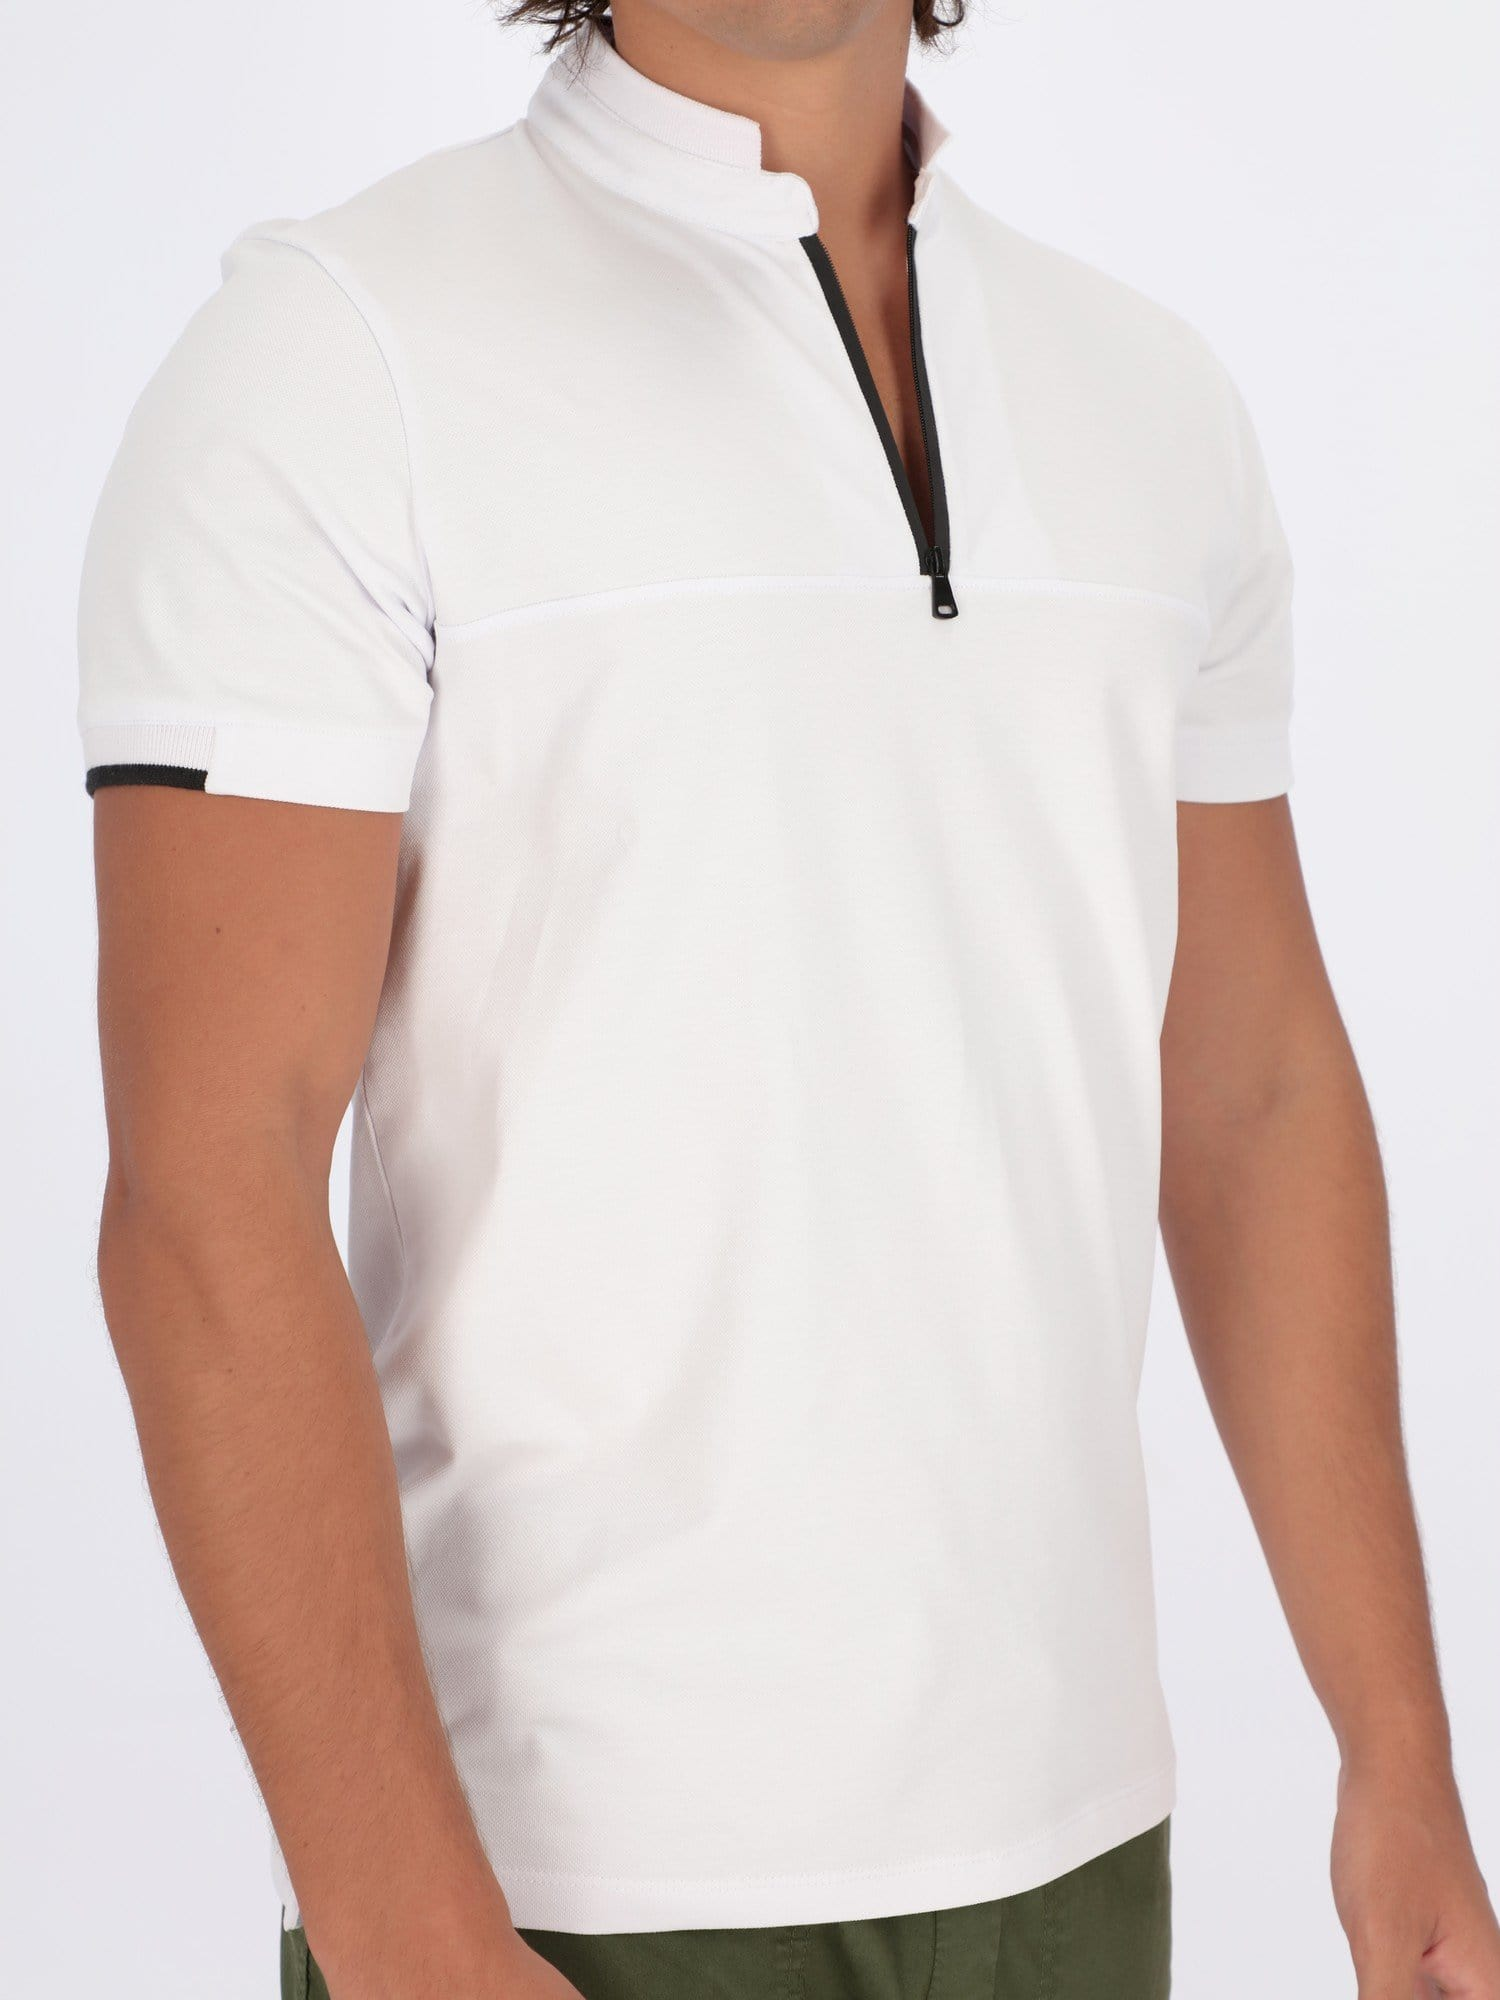 OR Polos Zip Grandad Collar Polo Shirt